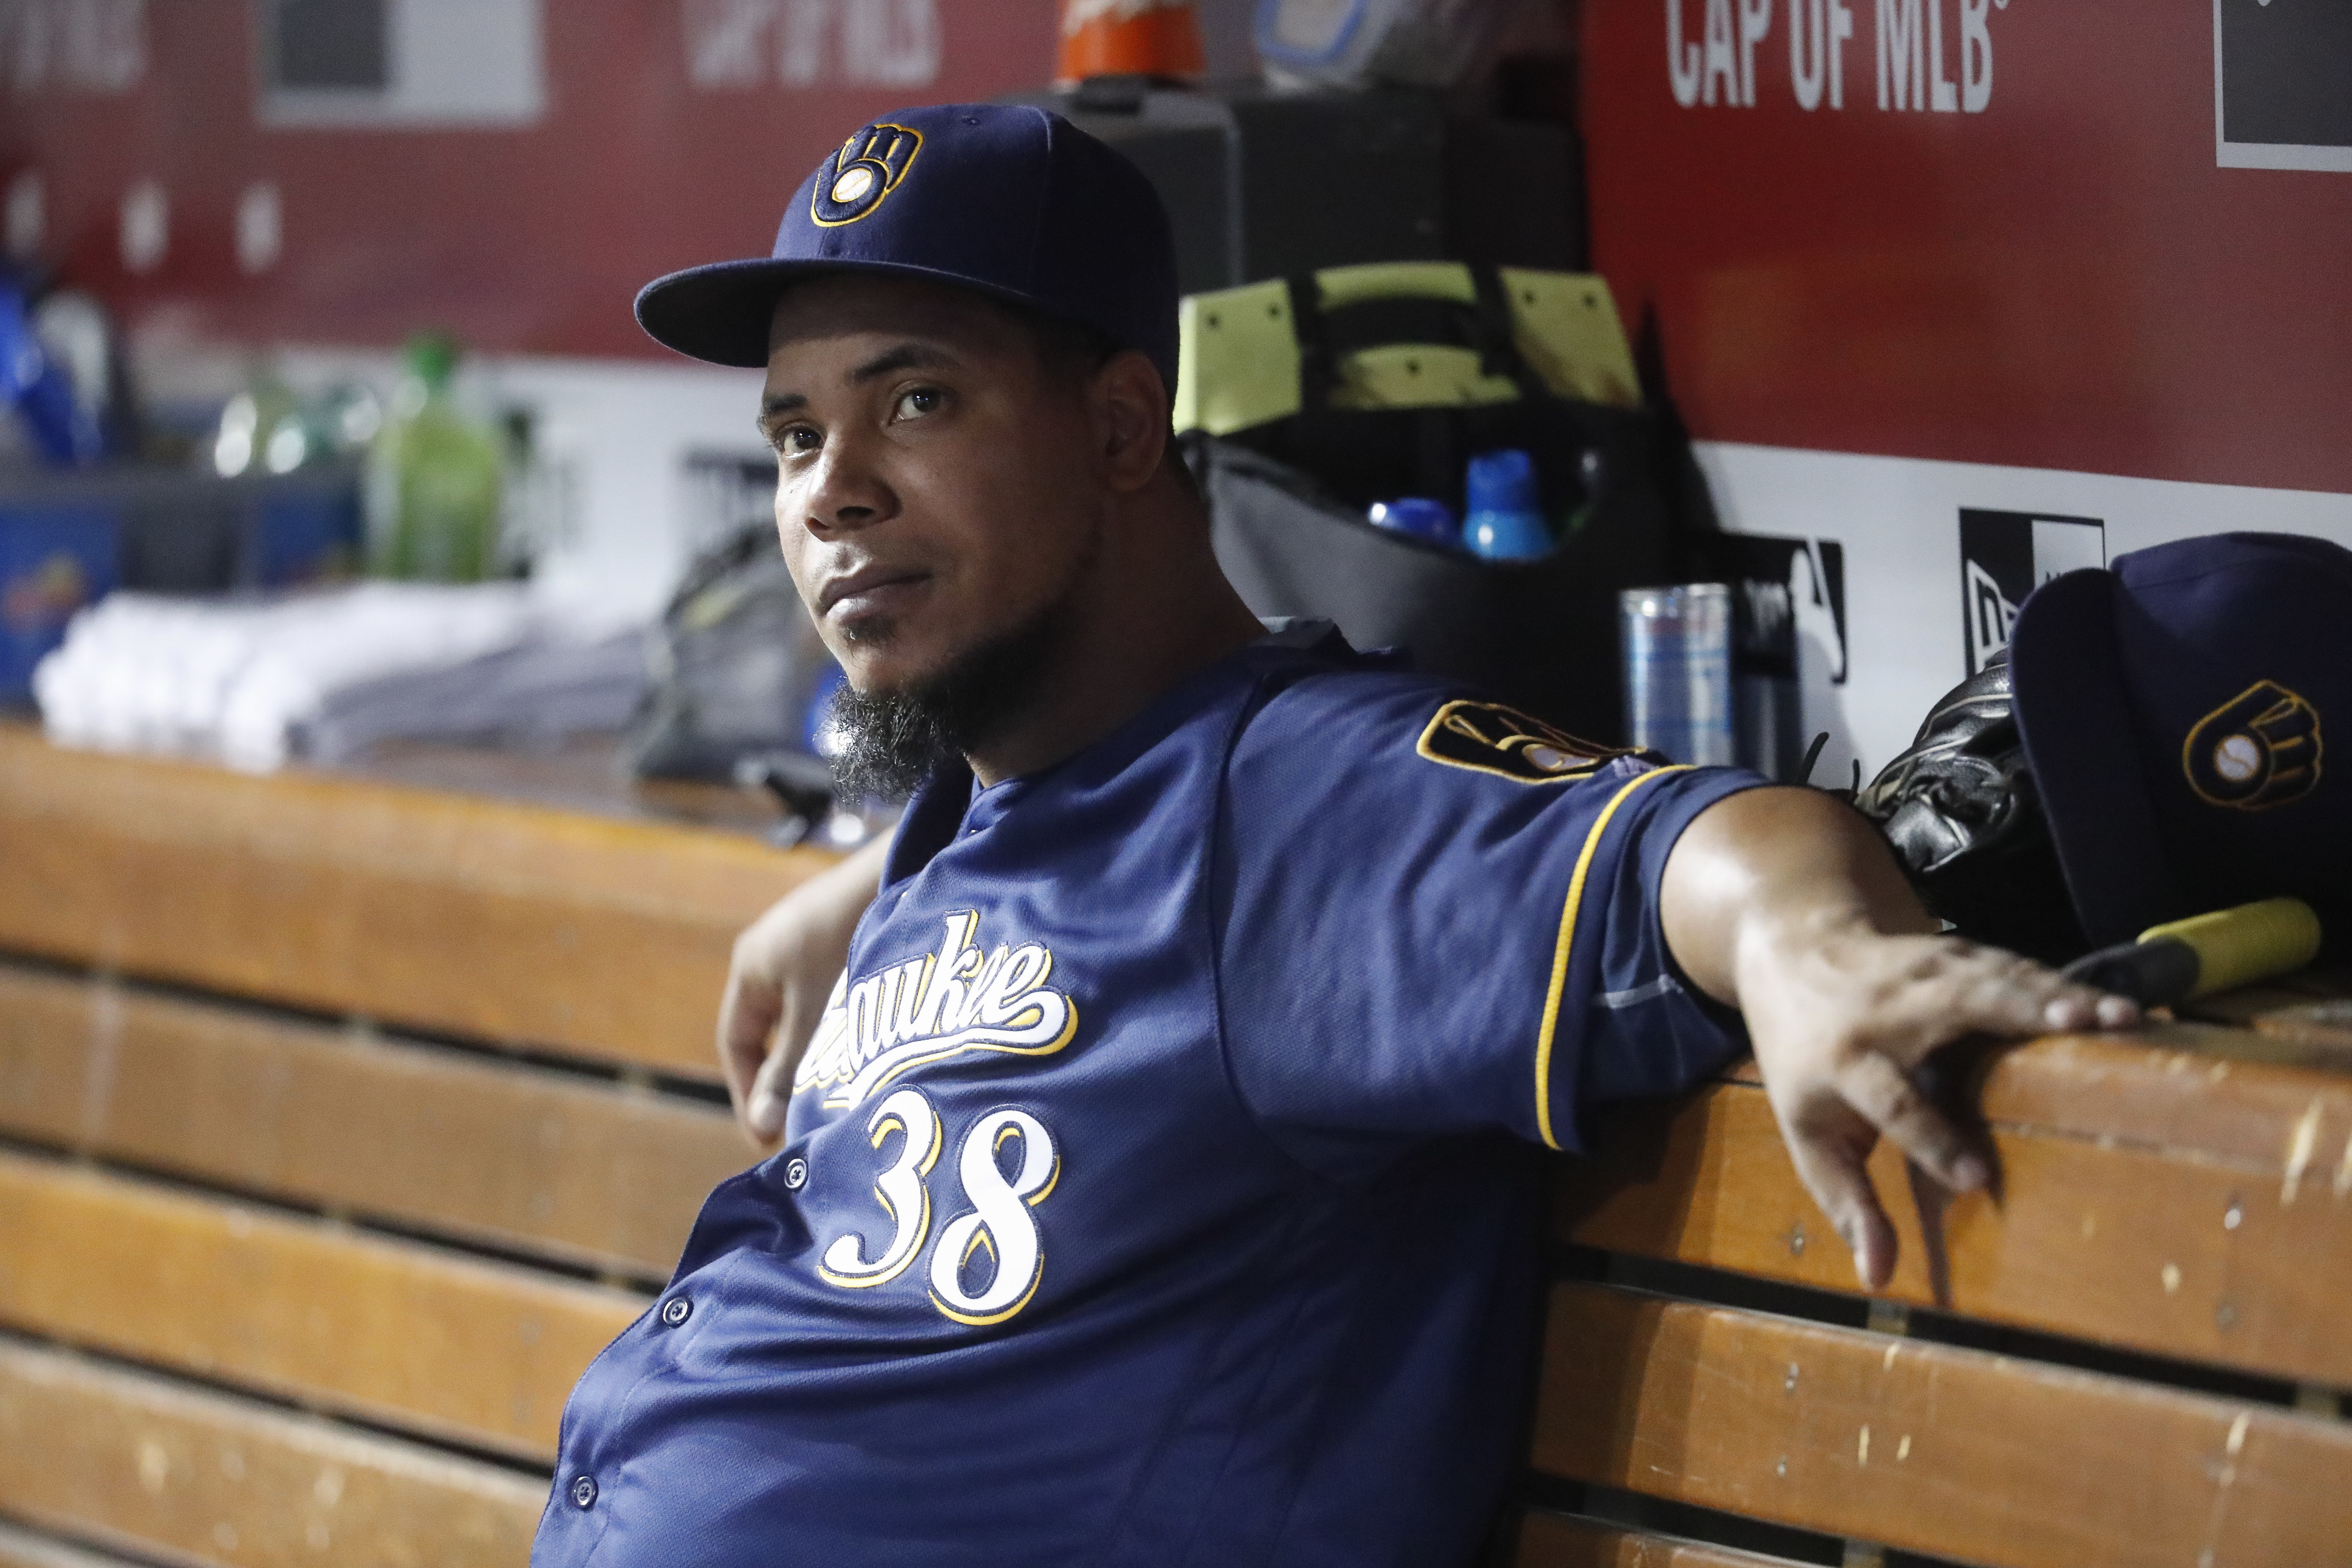 Milwaukee Brewers starting pitcher Wily Peralta sits in the dugout in the seventh inning of a baseball game against the Cincinnati Reds, Monday, Sept. 12, 2016, in Cincinnati. (AP Photo/John Minchillo)